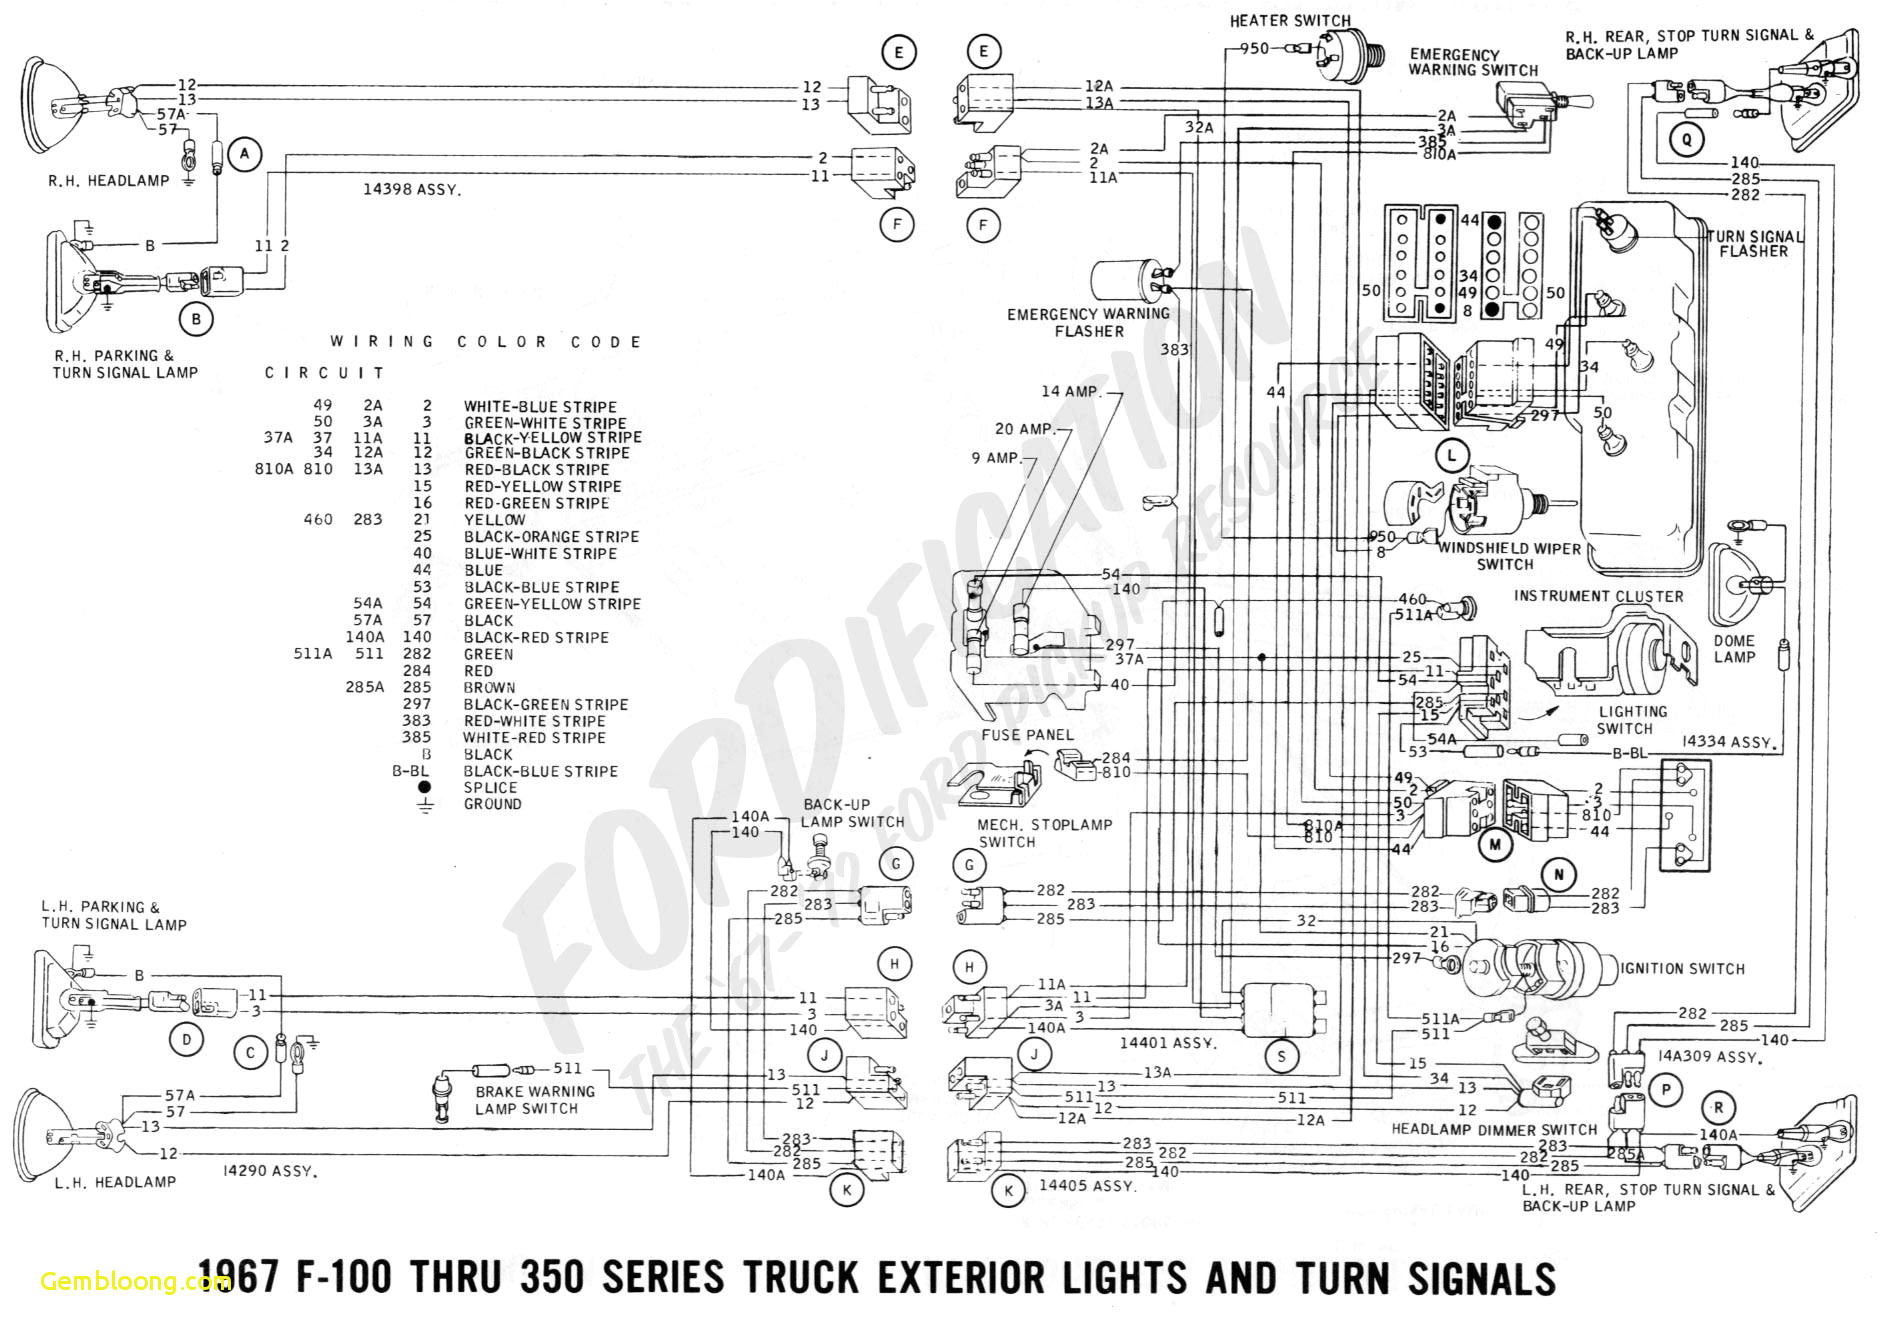 download ford trucks wiring diagrams ford f150 wiring diagrams best volvo s40 2 0d engine diagram free of ford trucks wiring diagrams jpg